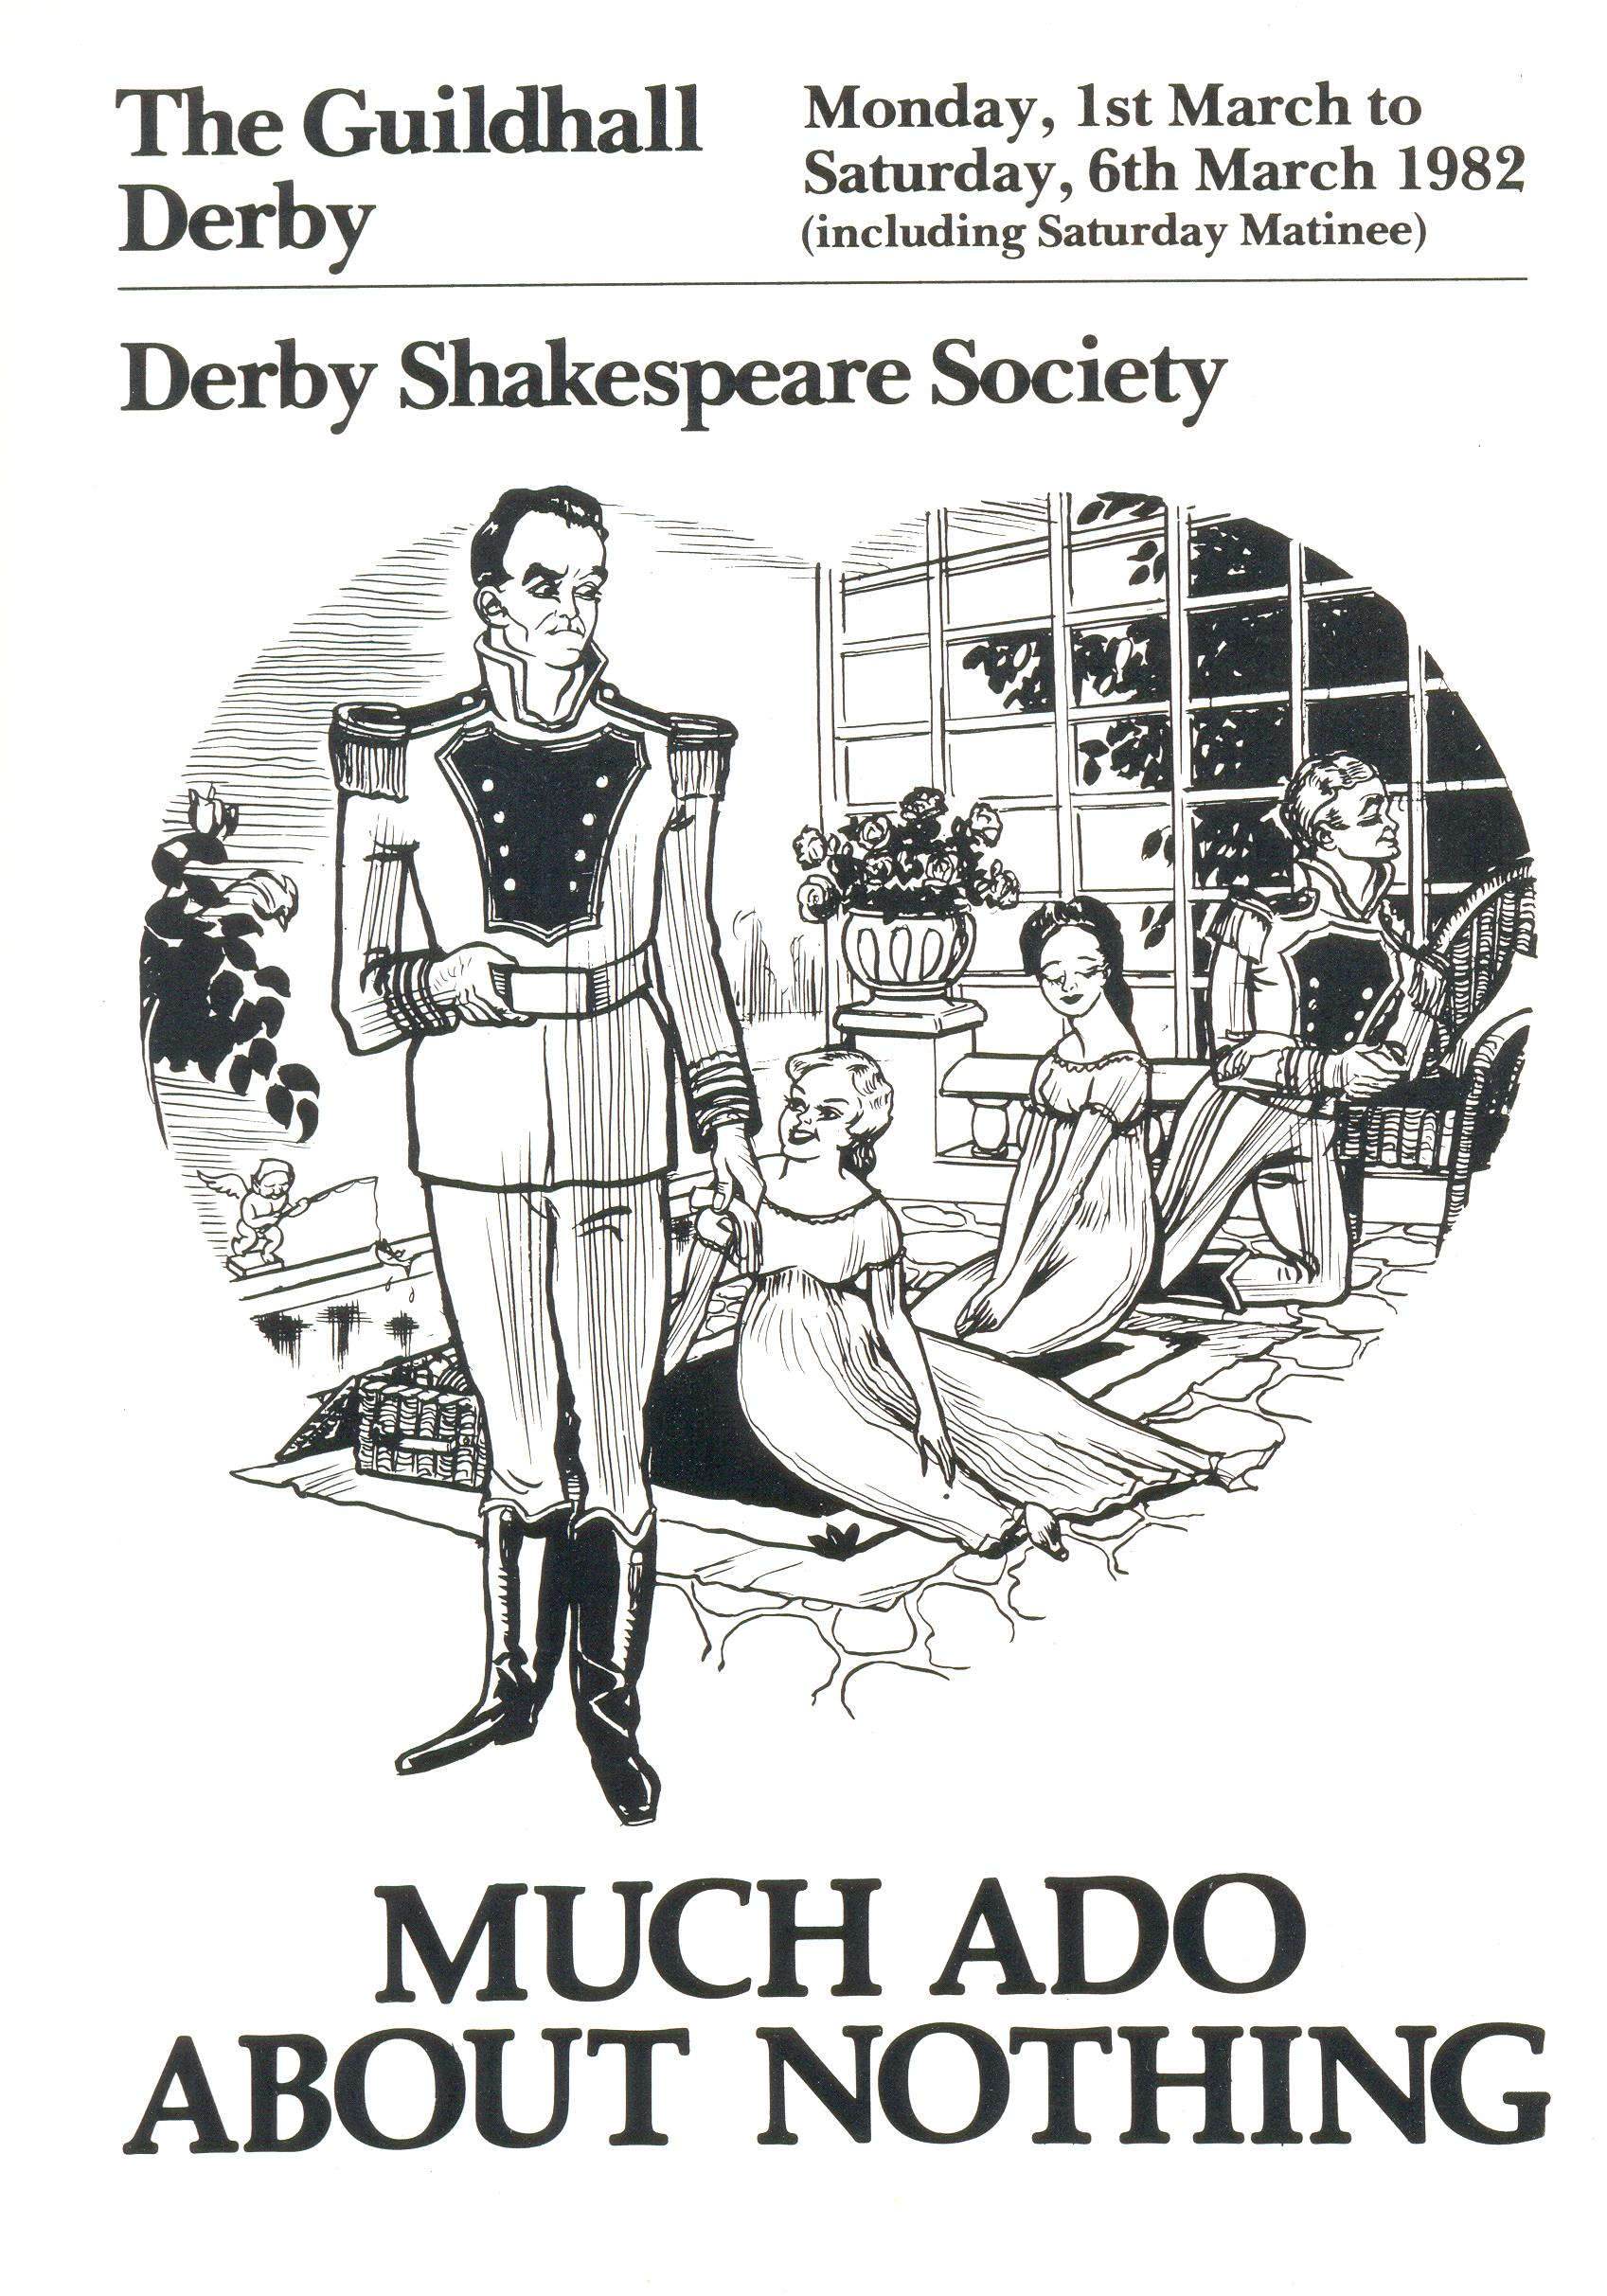 'Much Ado About Nothing' 1982